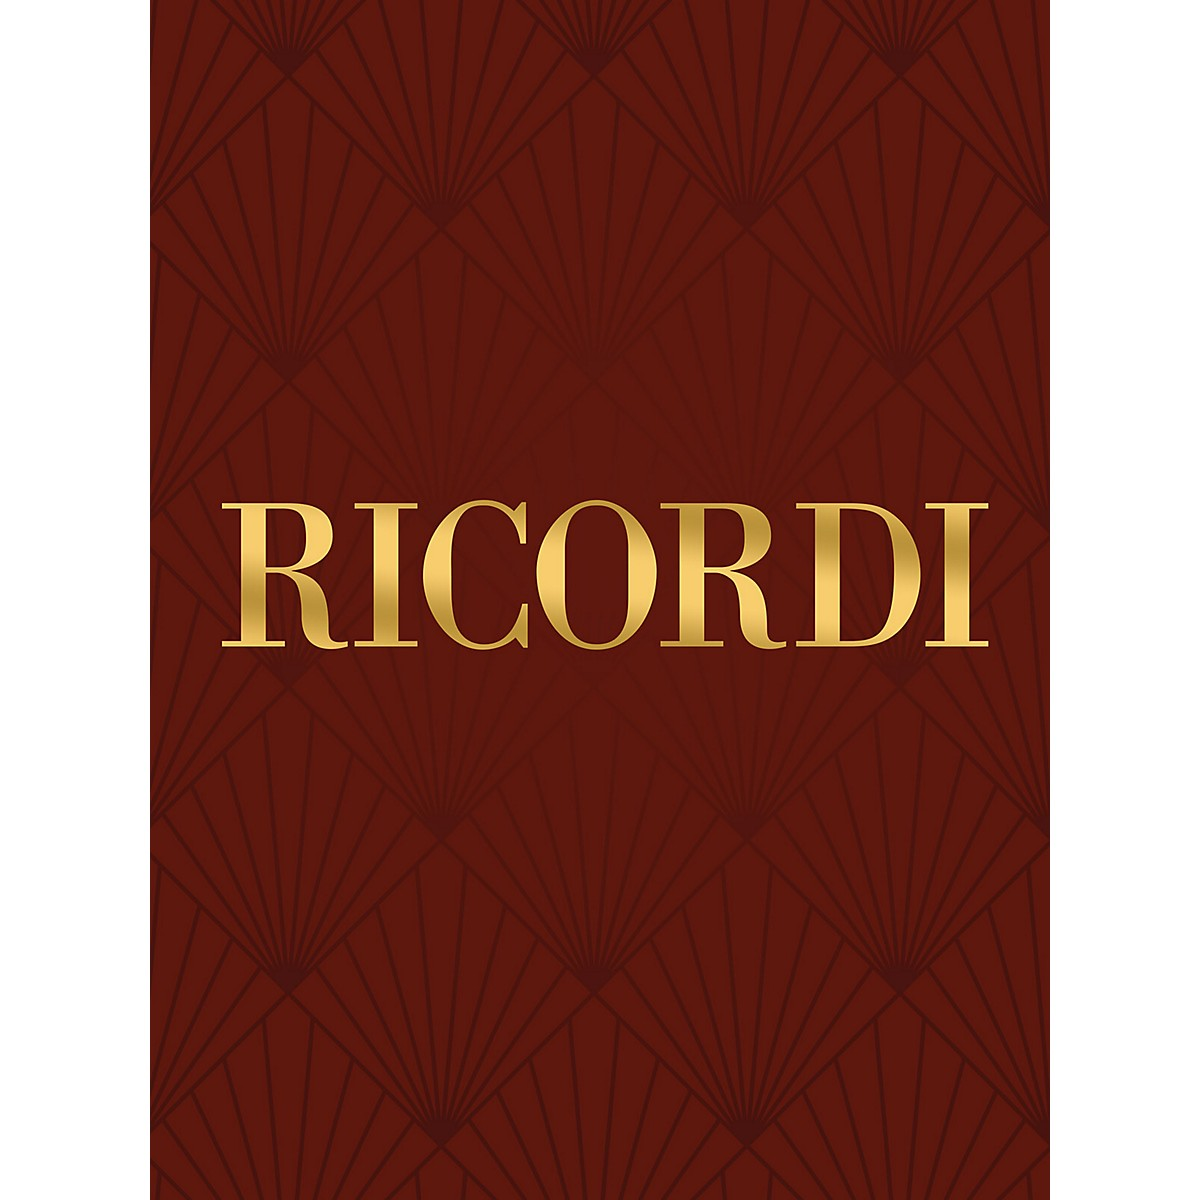 Ricordi Concerto in A Major for Strings and Basso Continuo RV159 Study Score by Vivaldi Edited by Ephrikian